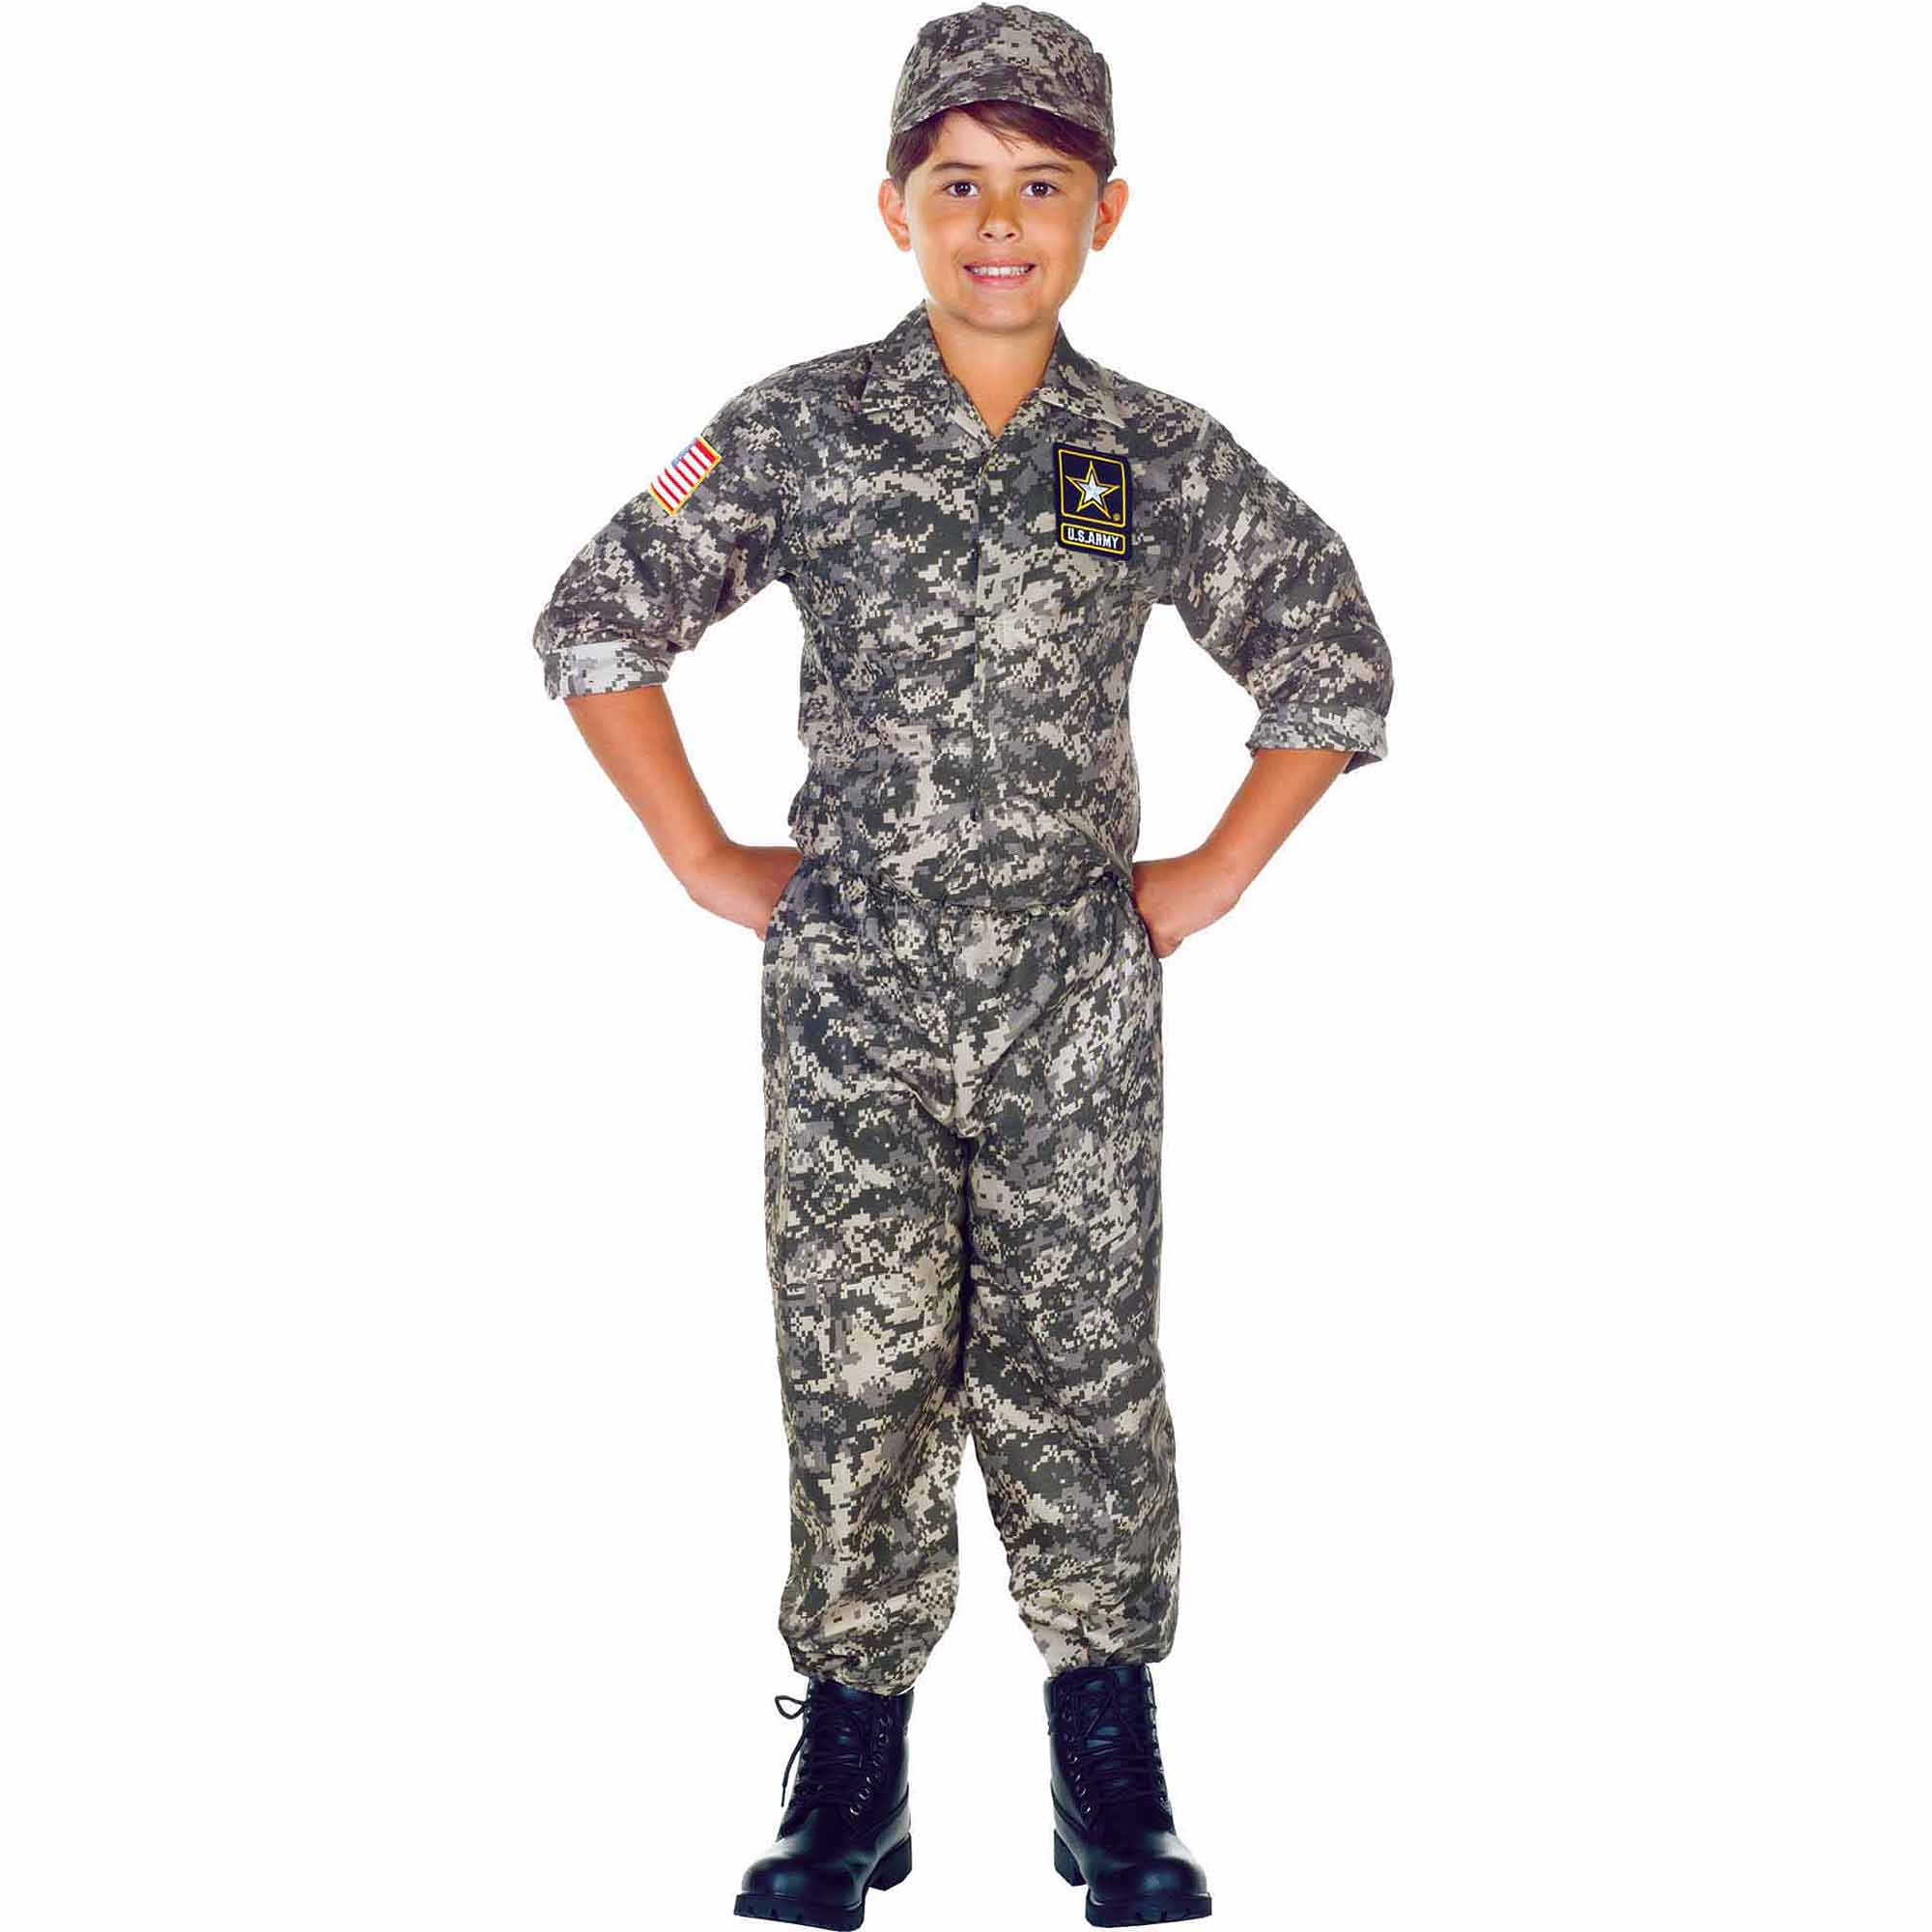 us army camo set child halloween costume walmartcom - Halloween Army Costumes